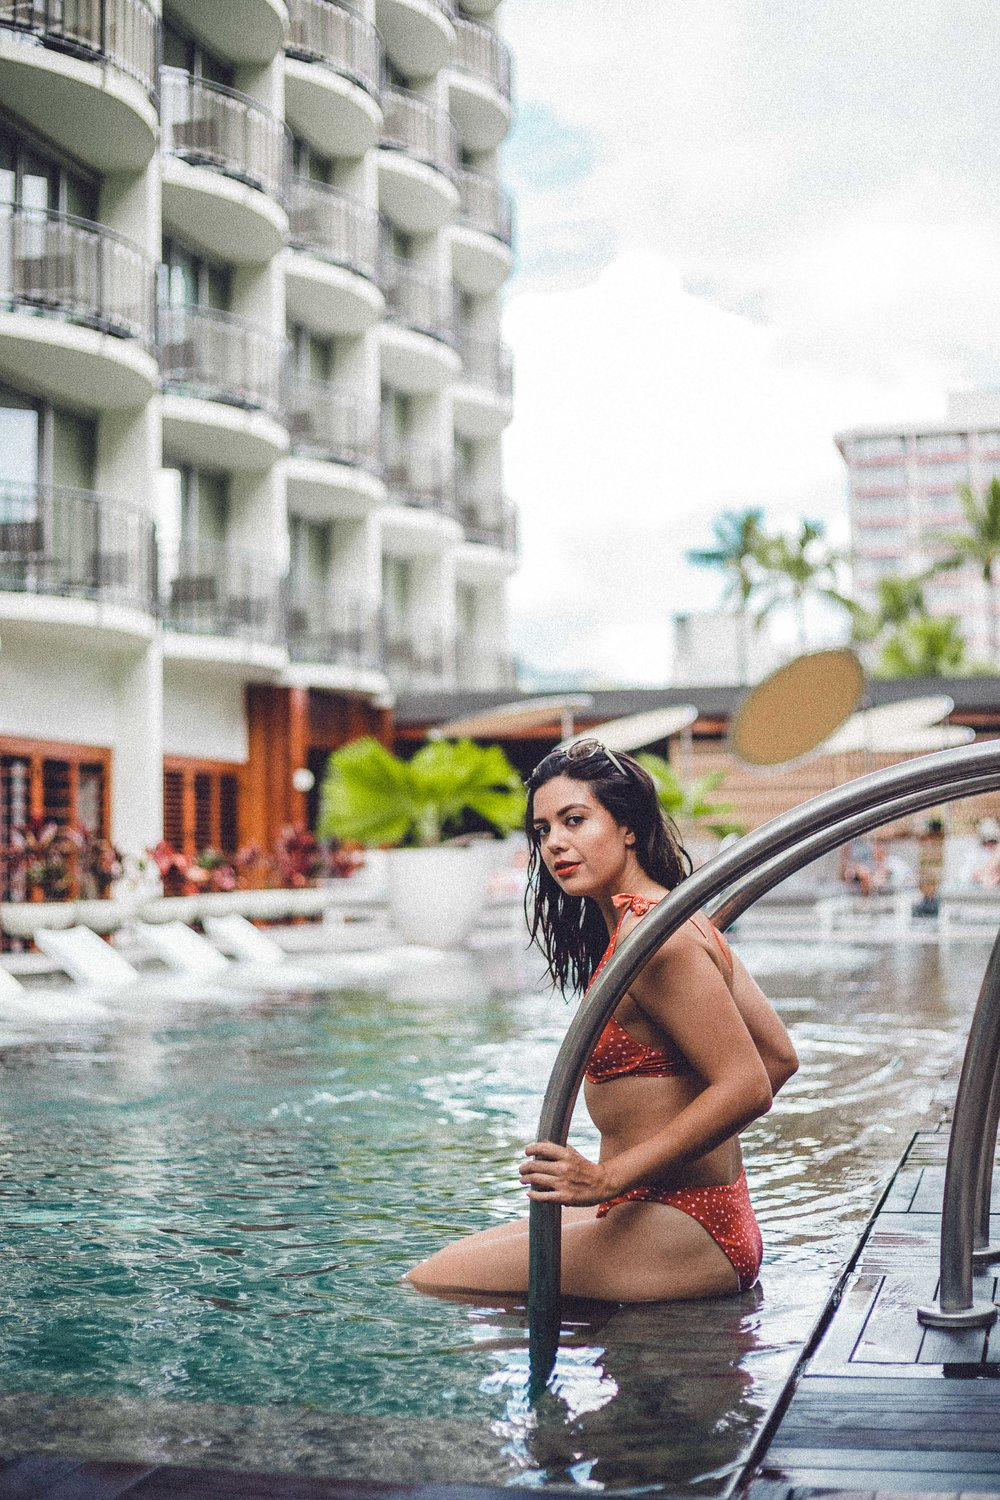 Rachel Off Duty: Woman at The Laylow Hotel Pool